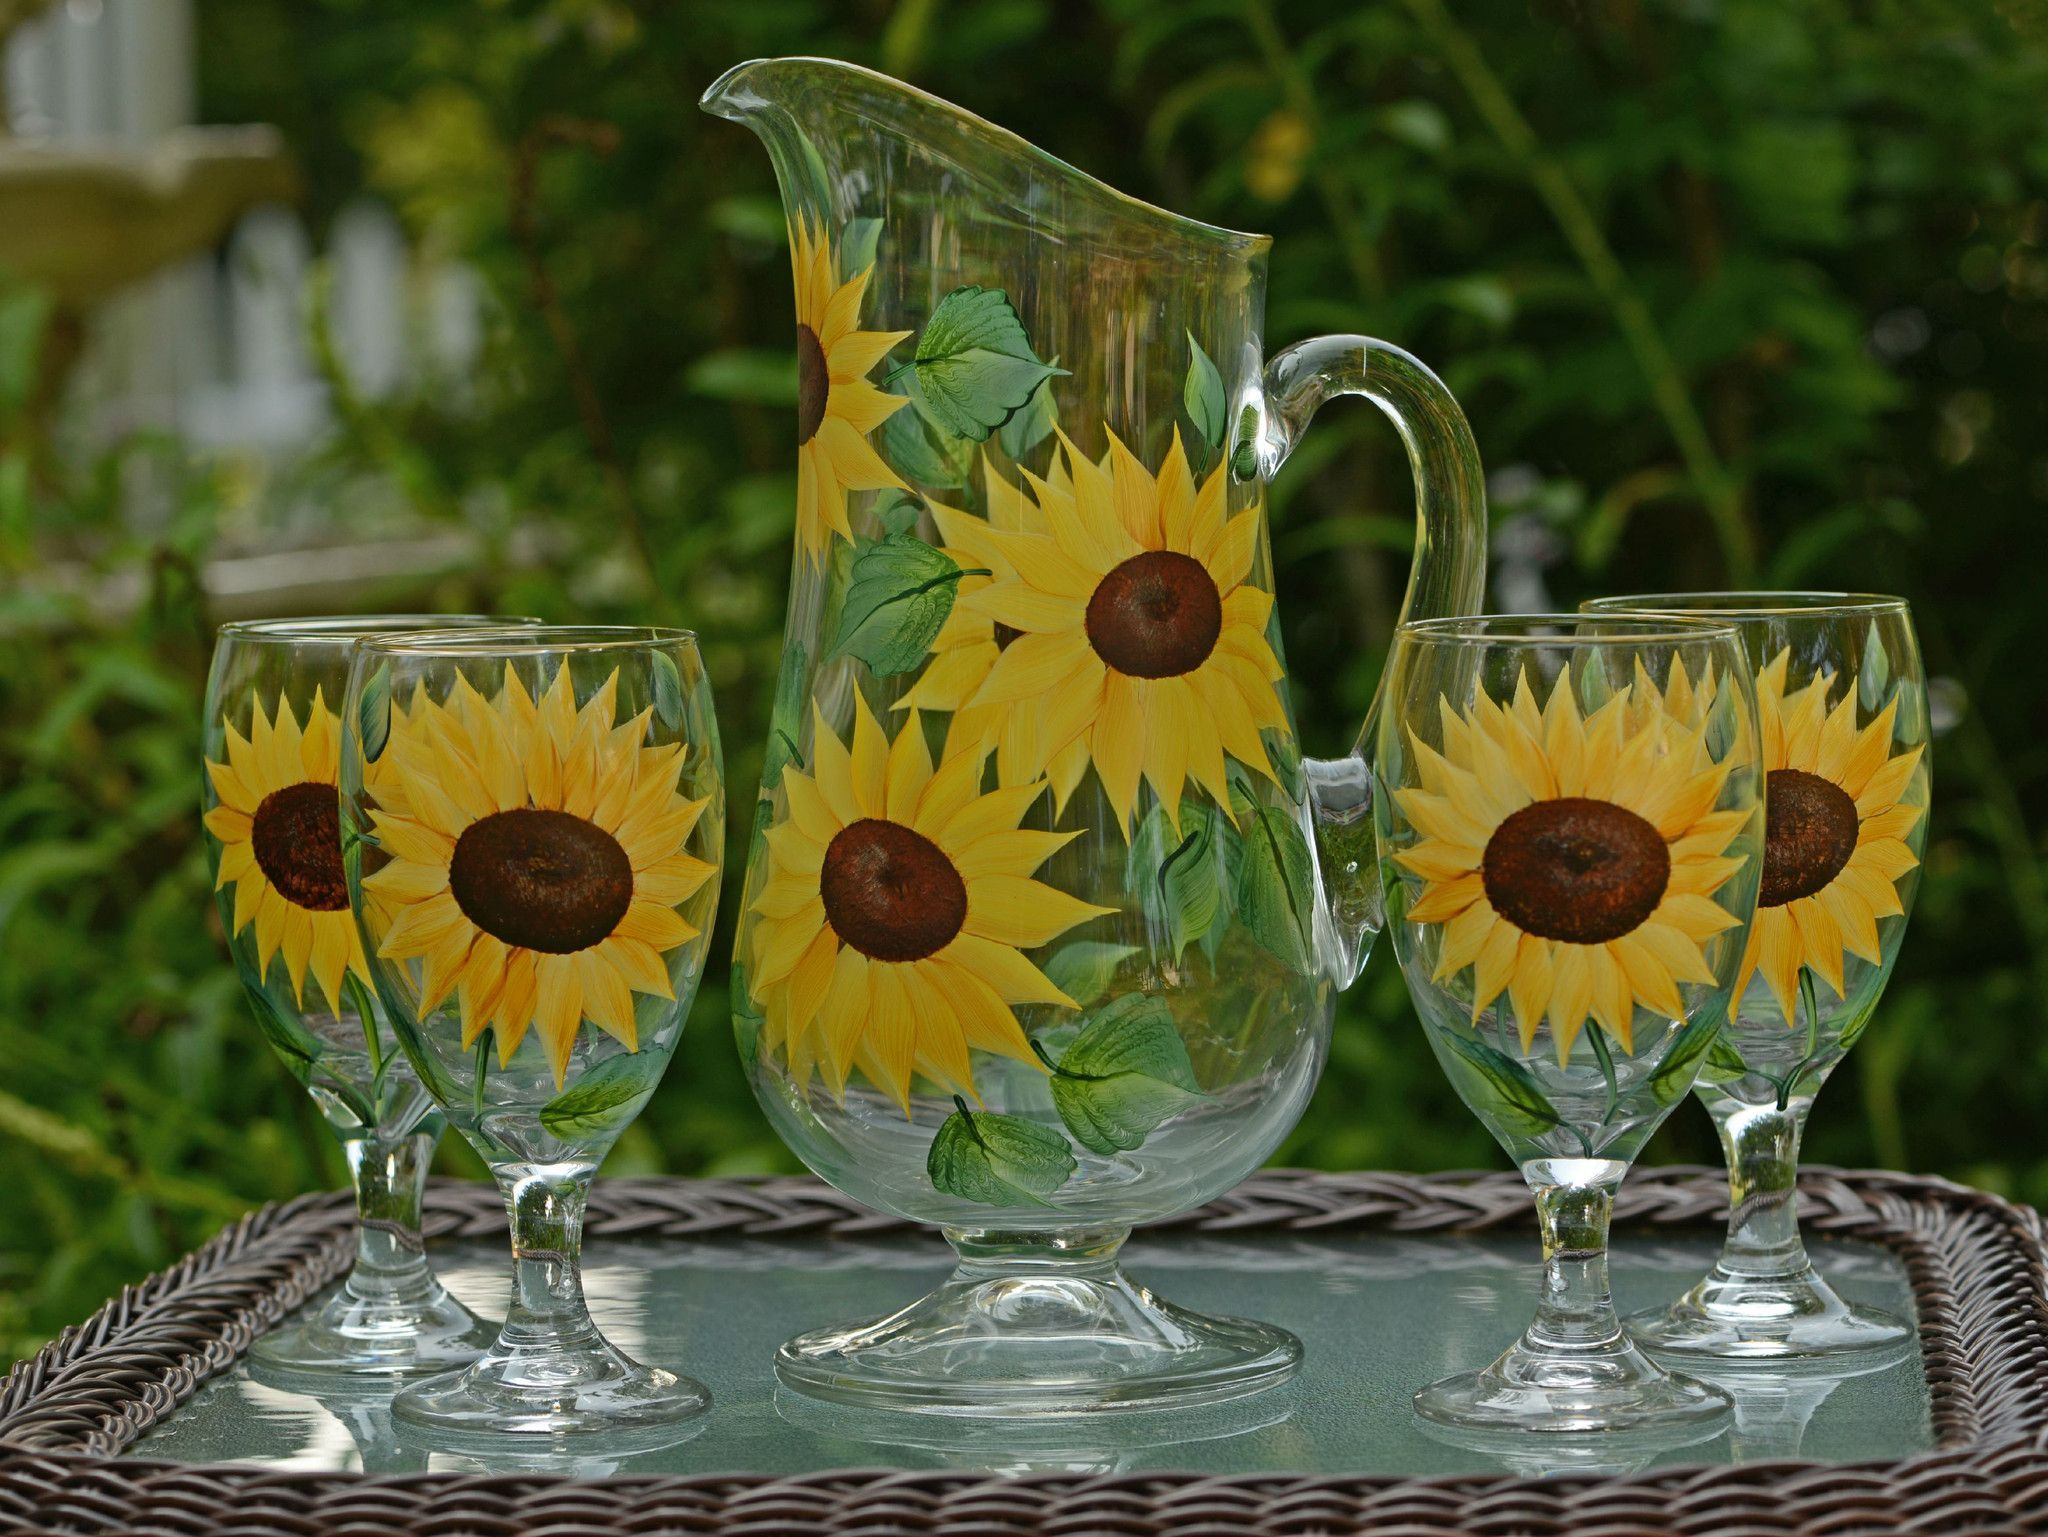 Sunflowers 5-Piece Hostess Set with Footed Pitcher | Girasoles y ...